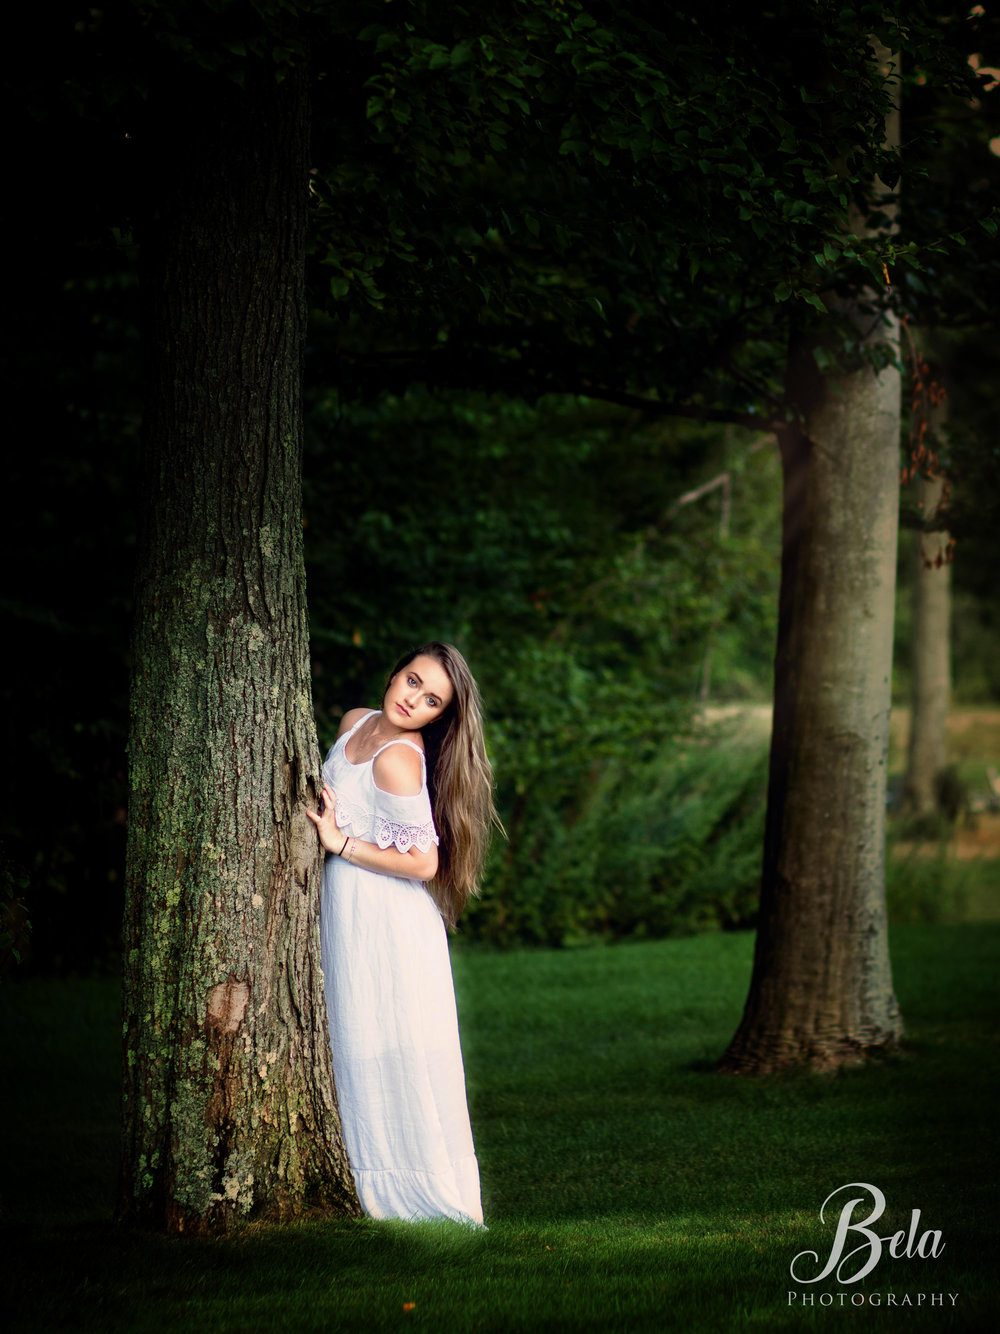 Into the woods - Photography Collection